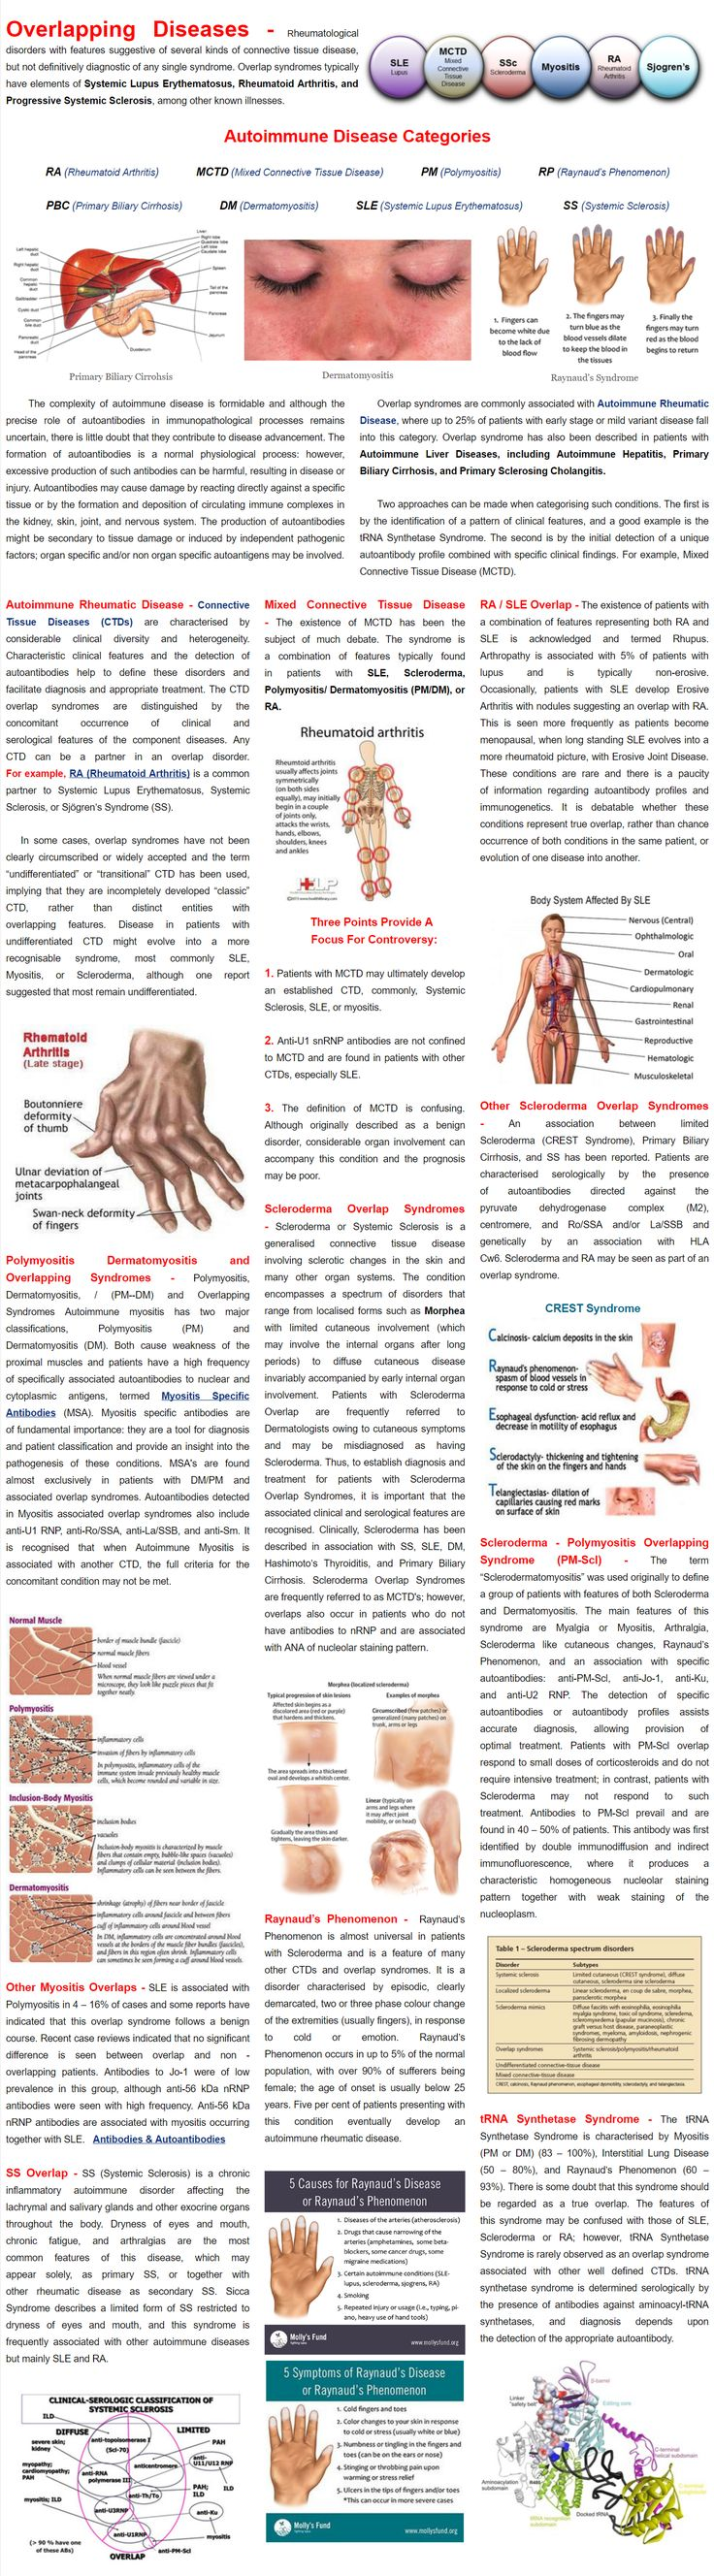 Rheumatological disorders with features suggestive of several kinds of connective tissue disease, but not definitively diagnostic of any single syndrome. Overlap syndromes typically have elements of Systemic Lupus Erythematosus, Rheumatoid Arthritis, and Progressive Systemic Sclerosis, among other known illnesses.